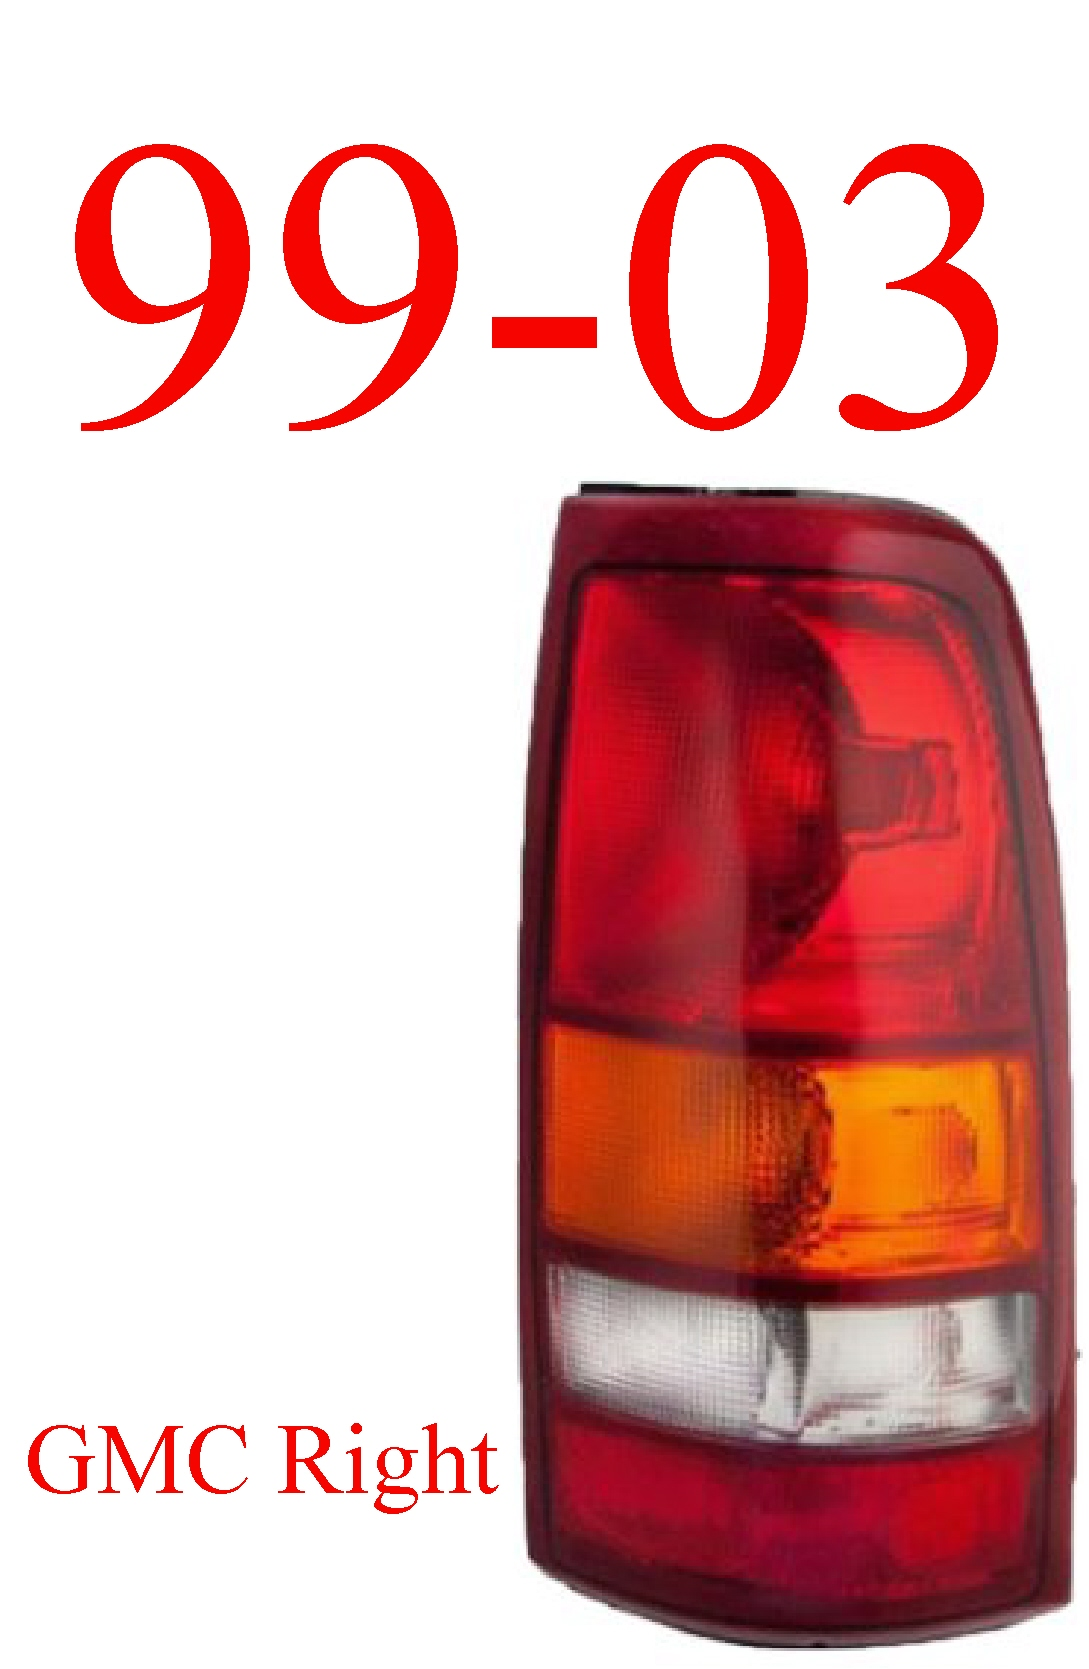 99-03 GMC Truck Right Tail Light Assembly